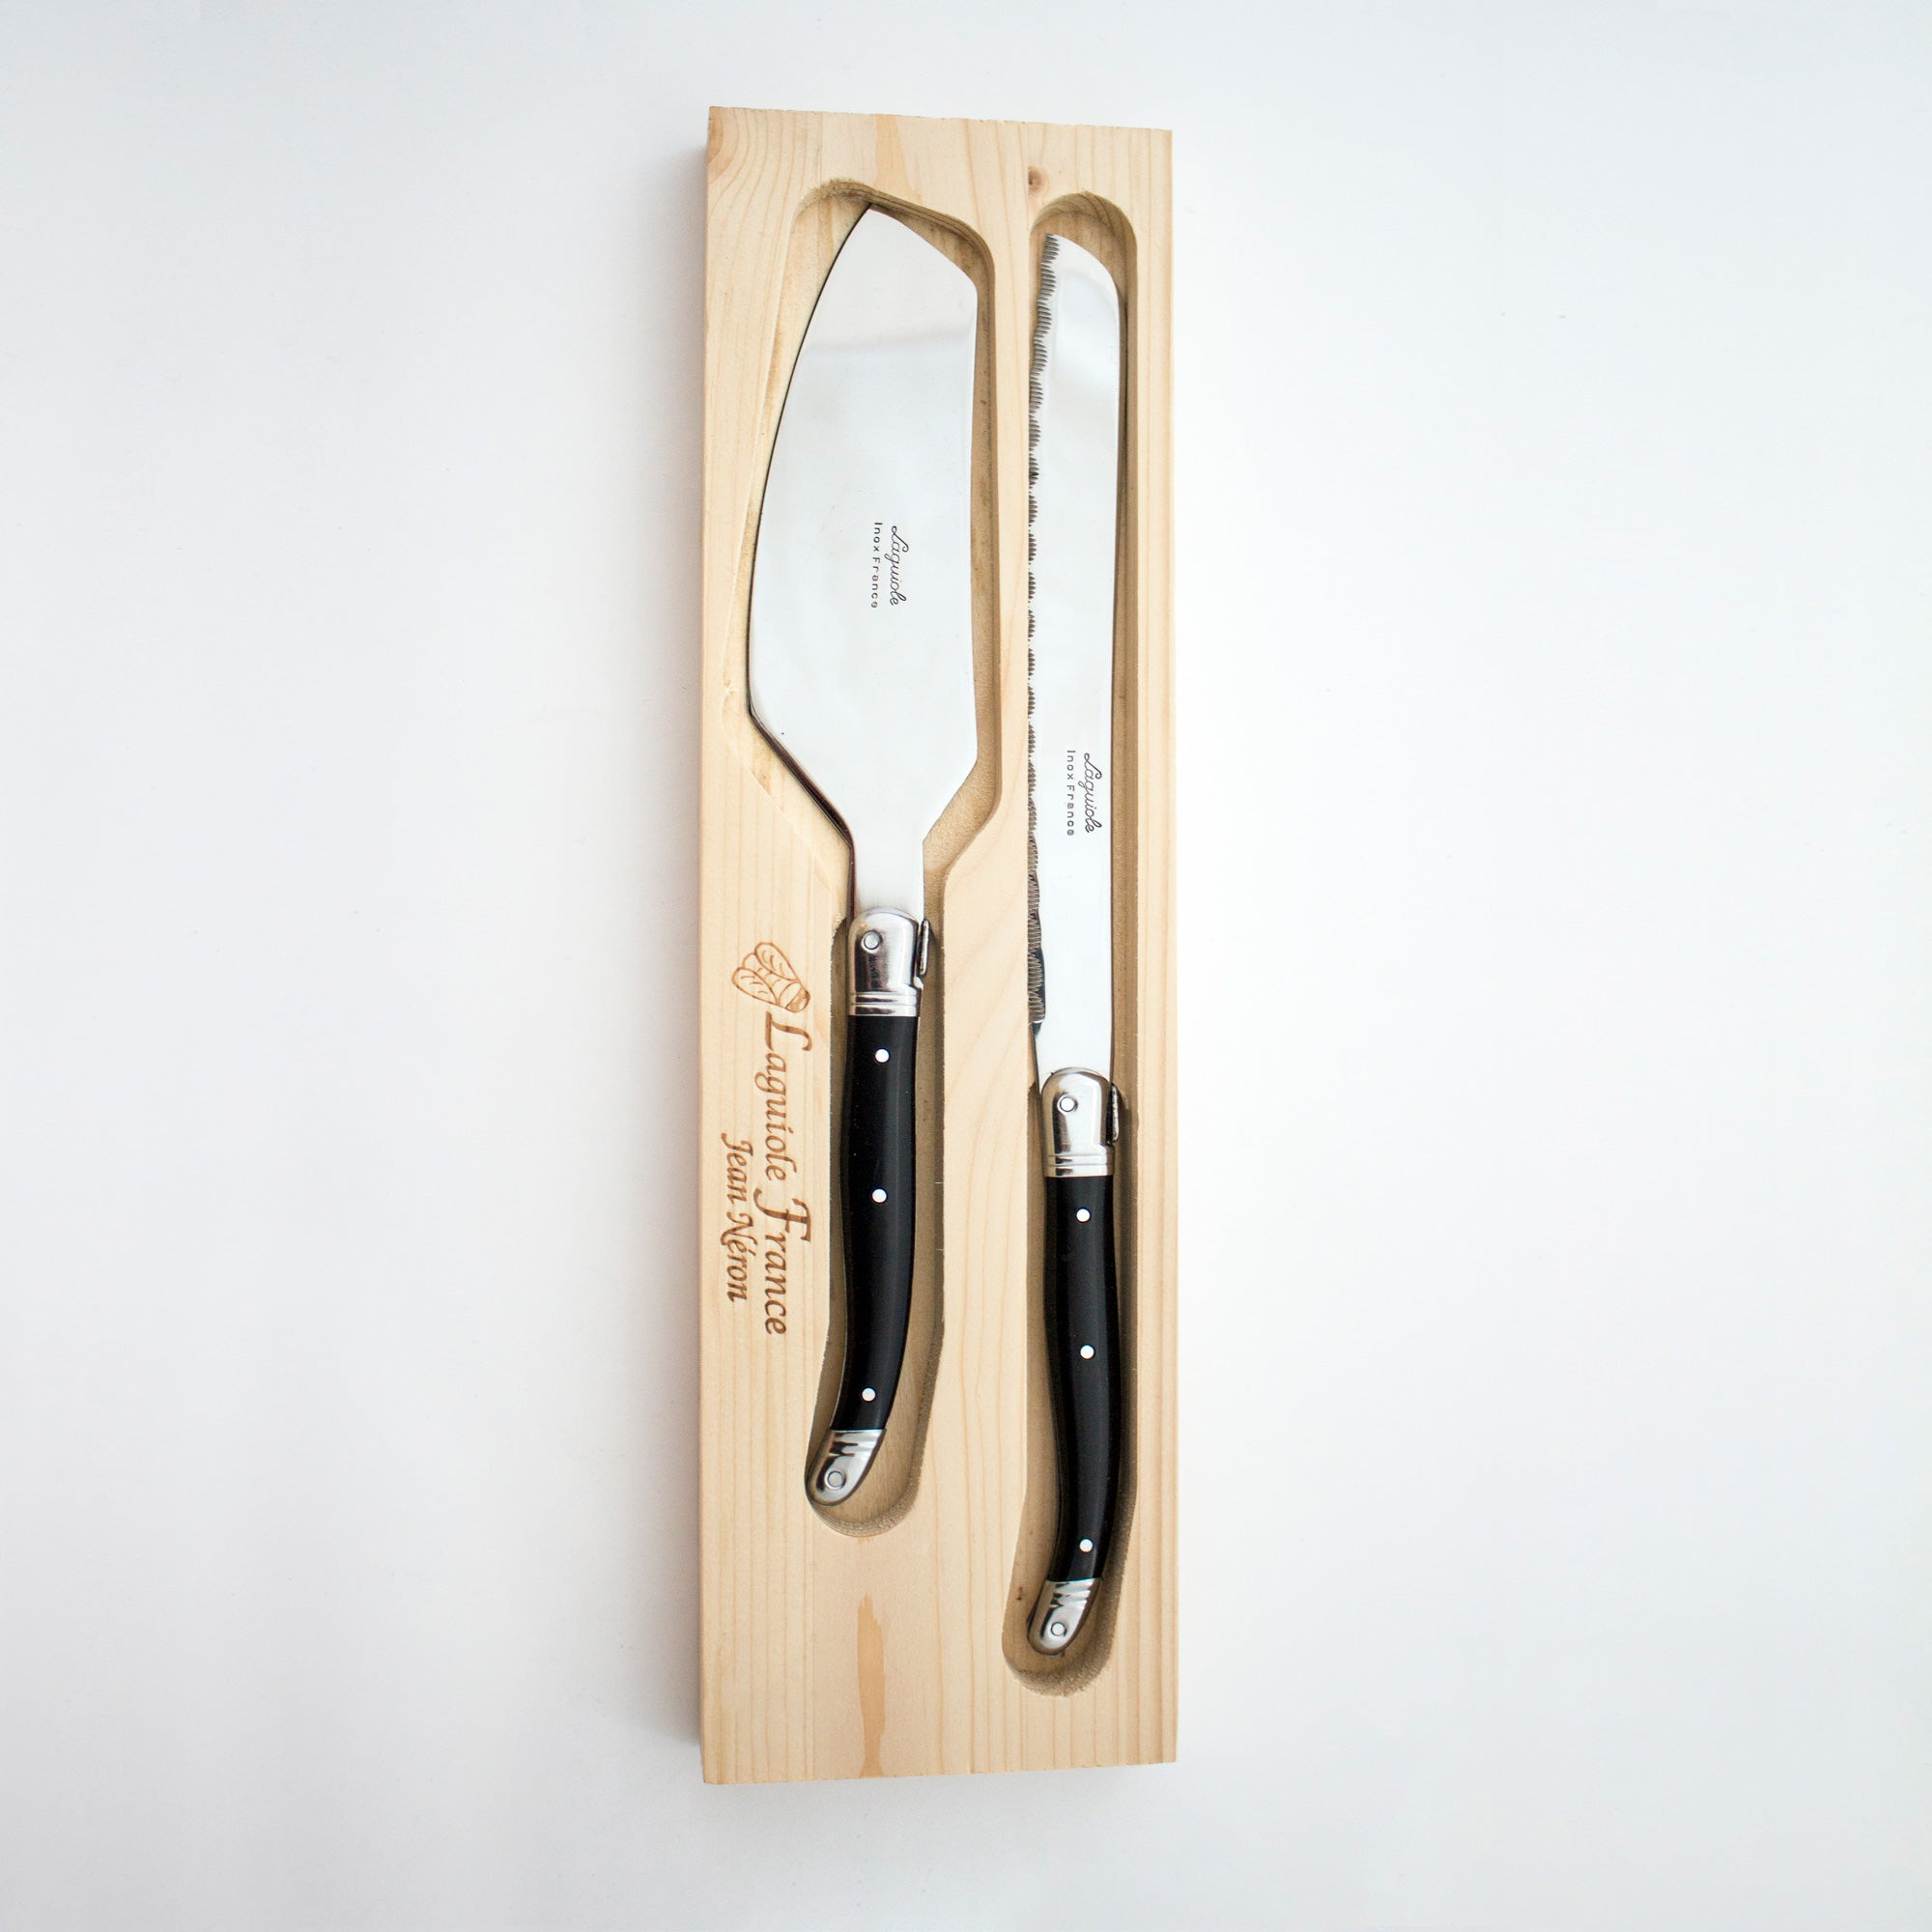 Laguiole Black Cake Set in Wood Box (Cake Slicer and Bread Knife)